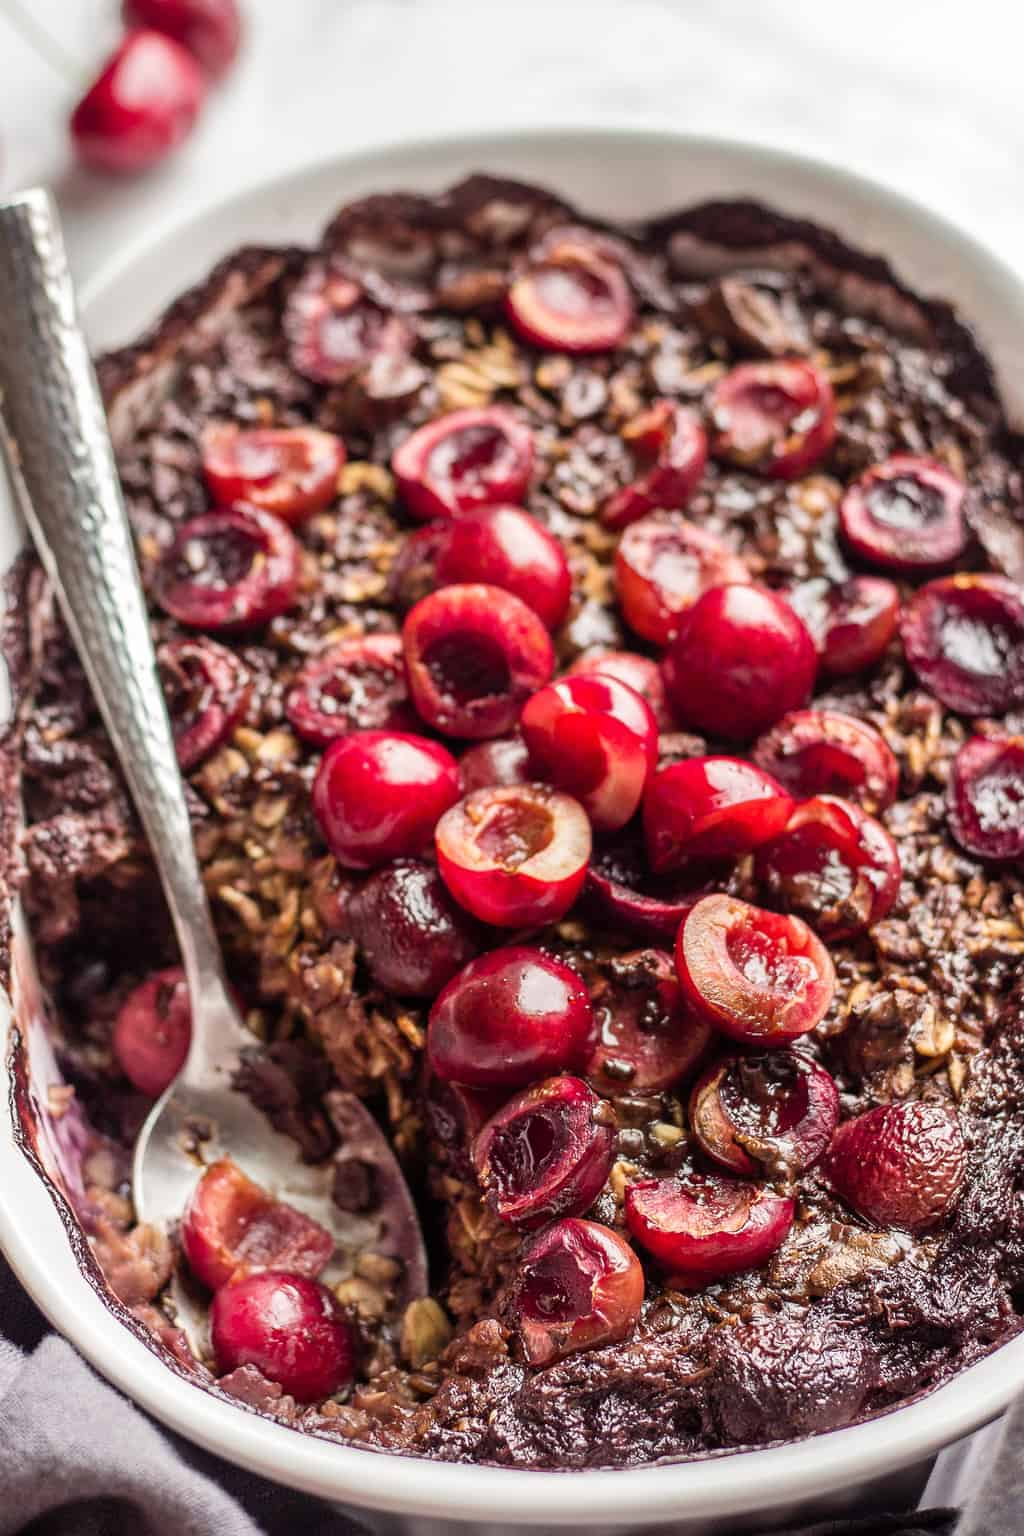 Fresh cherries topped baked chocolate oatmeal